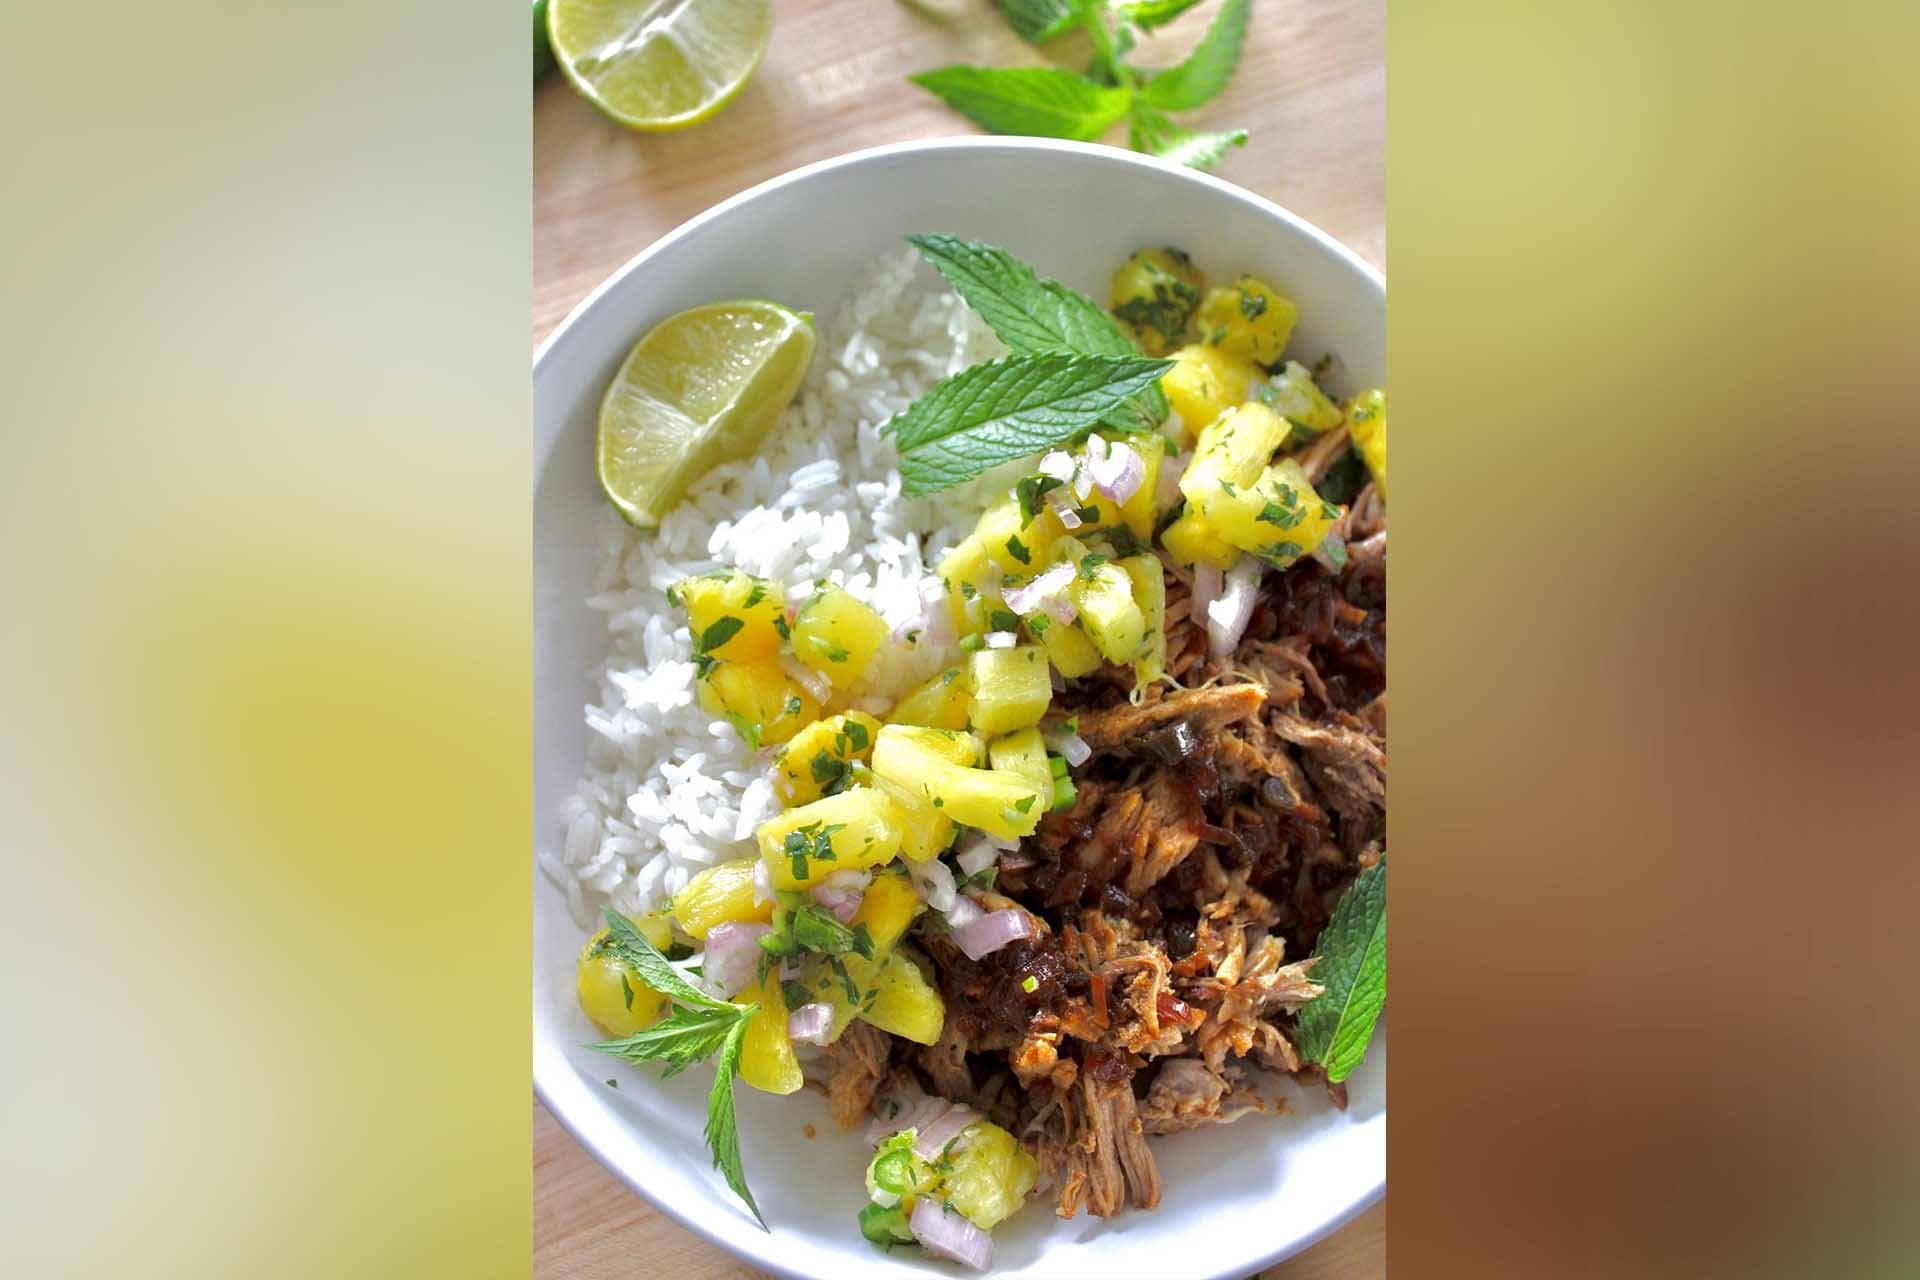 Sara Stirs: Shredded pork with pineapple relish featuring local meat? Yes, please!